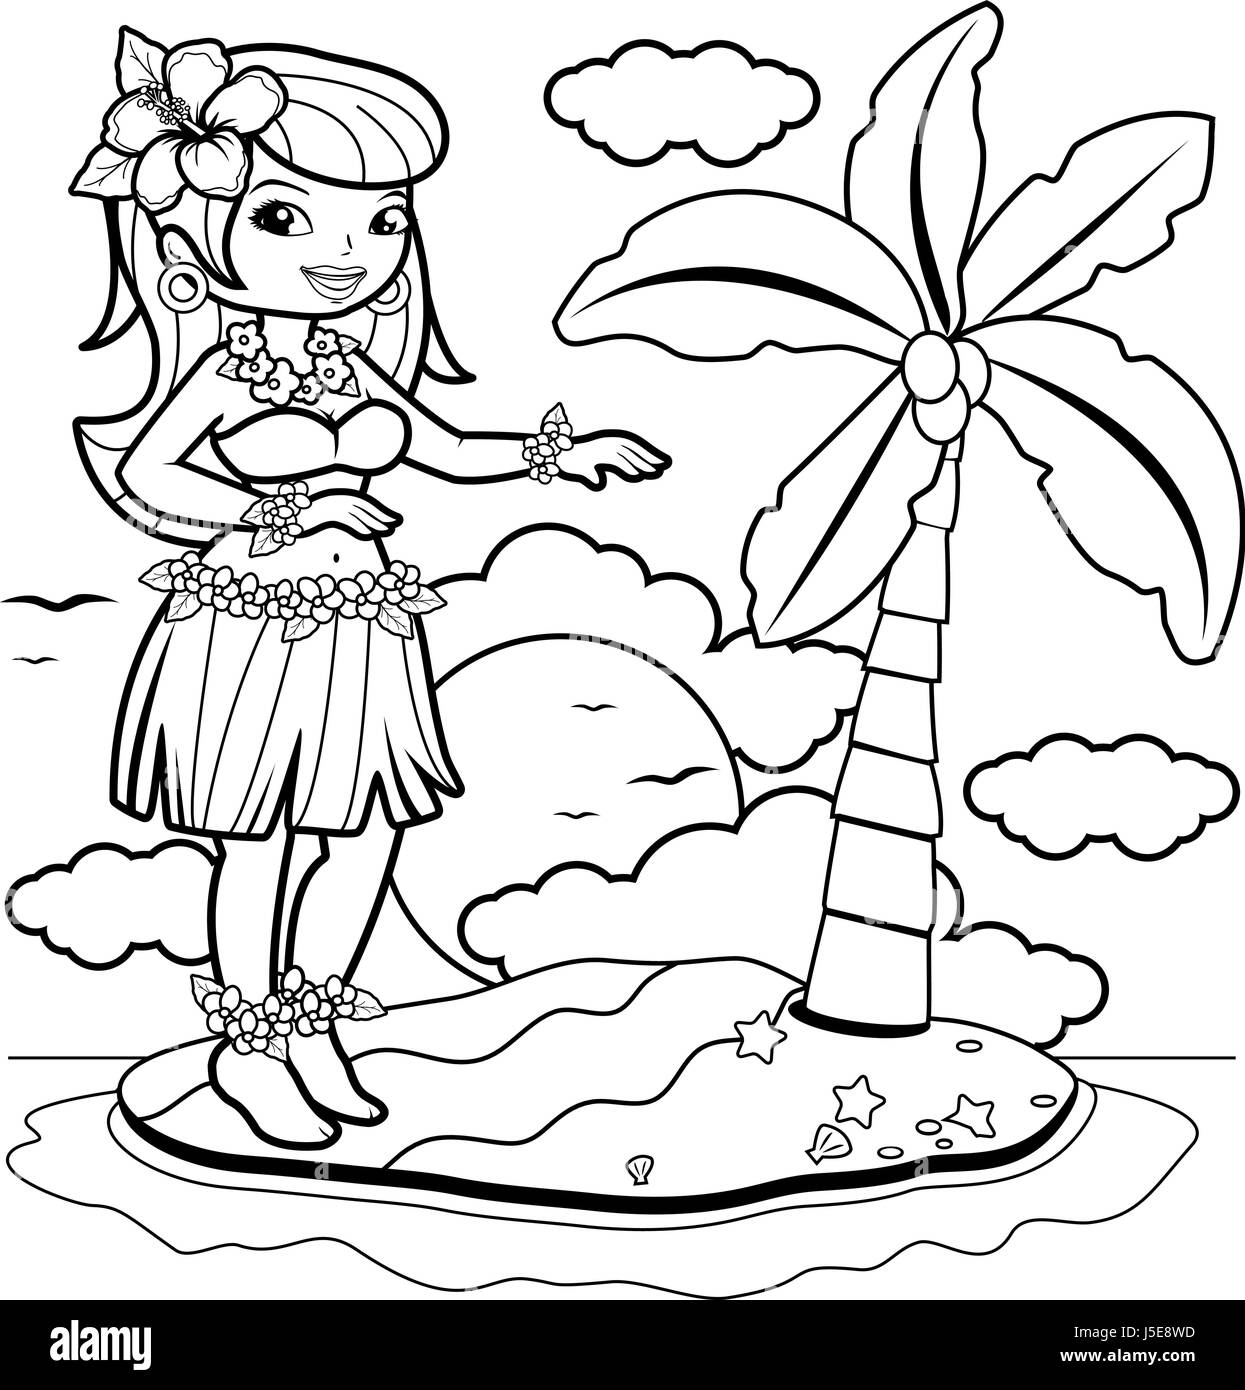 Hawaii Island Coloring Pages